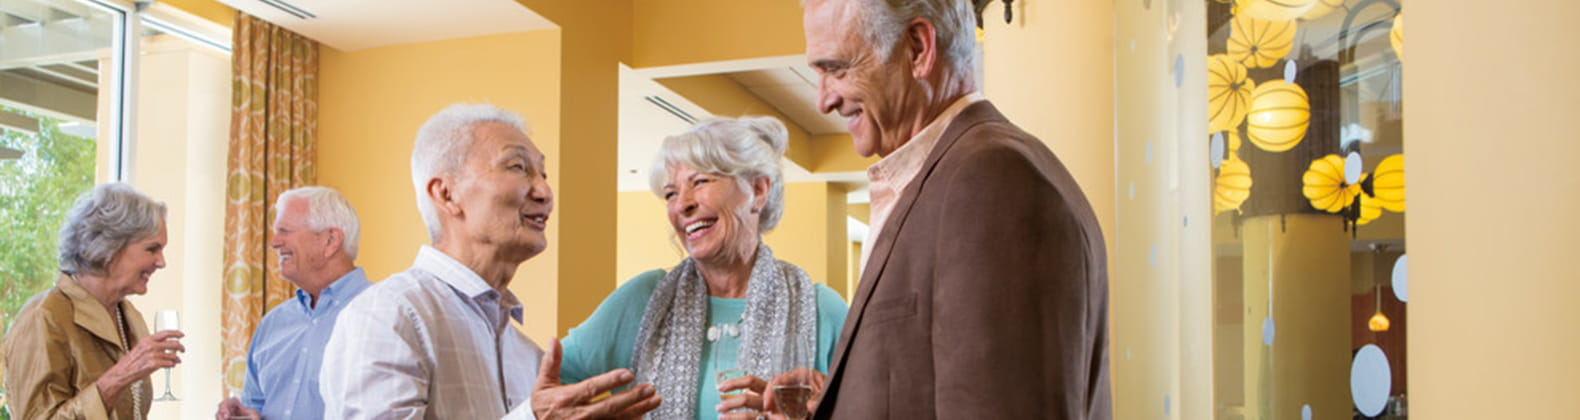 Senior Living Residents Mingle at a Community Function at Vi at La Jolla a Life Plan Community in San Diego